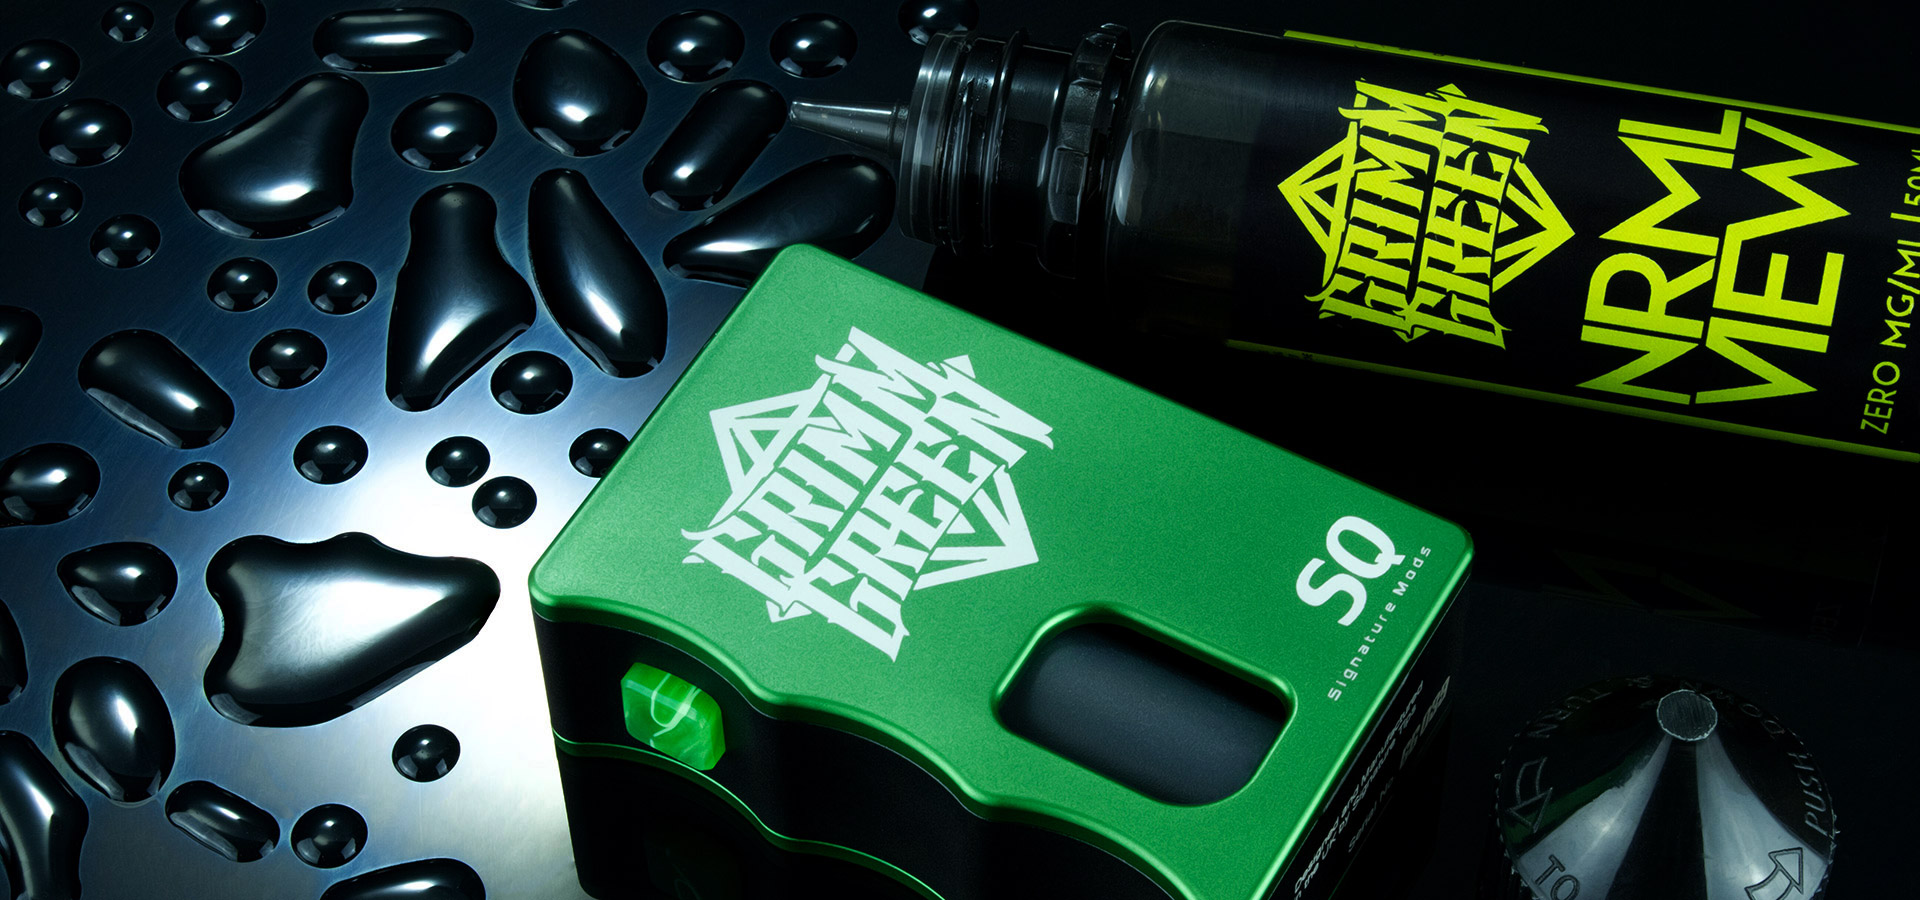 SQ Mod Grimm Green Limited Edition